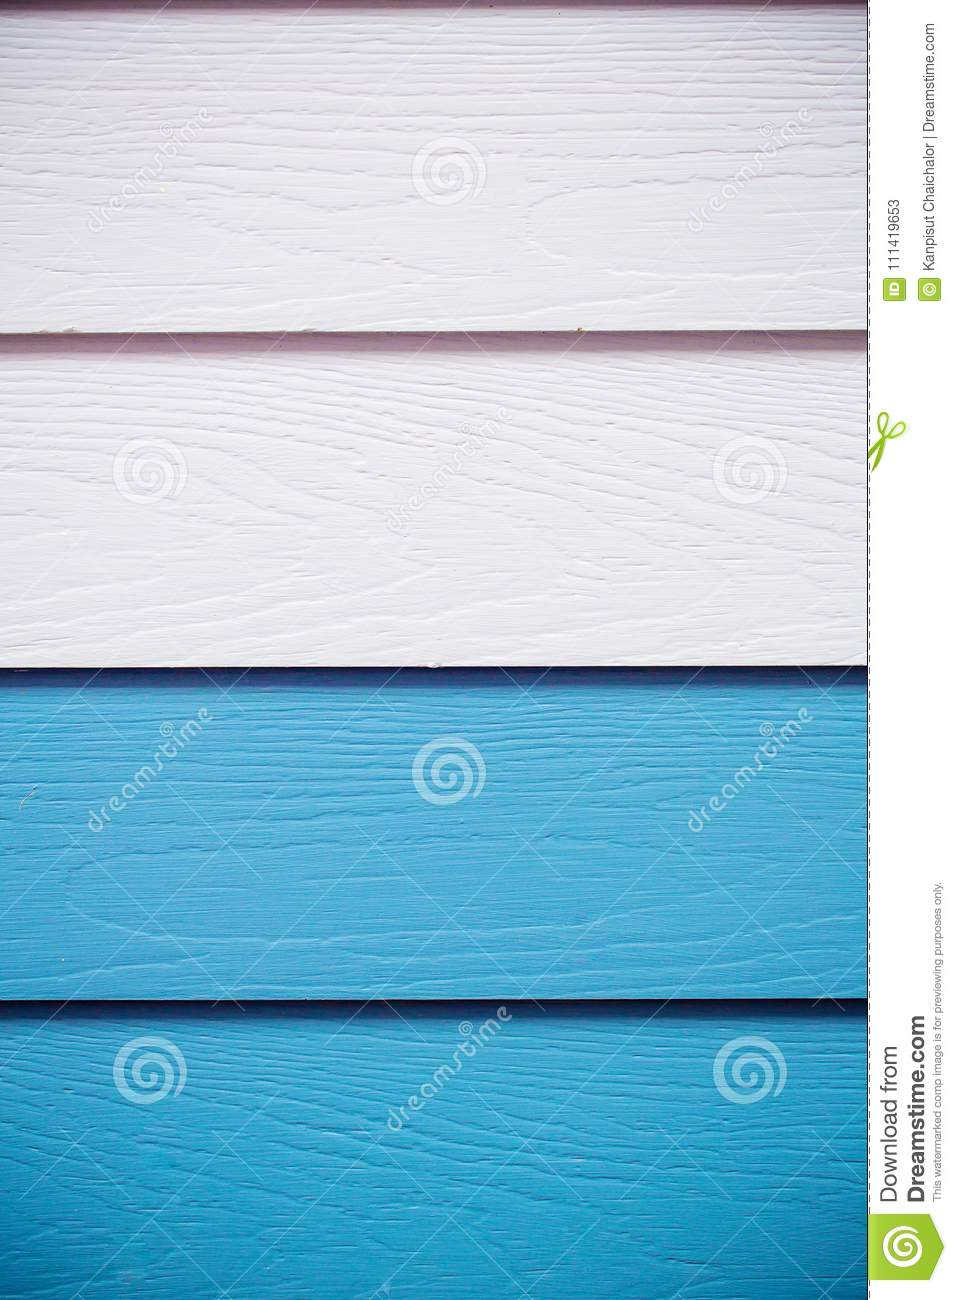 Wood blue background.blue Synthetic wood wall texture use for background.Colorful wooden board painted in blue.